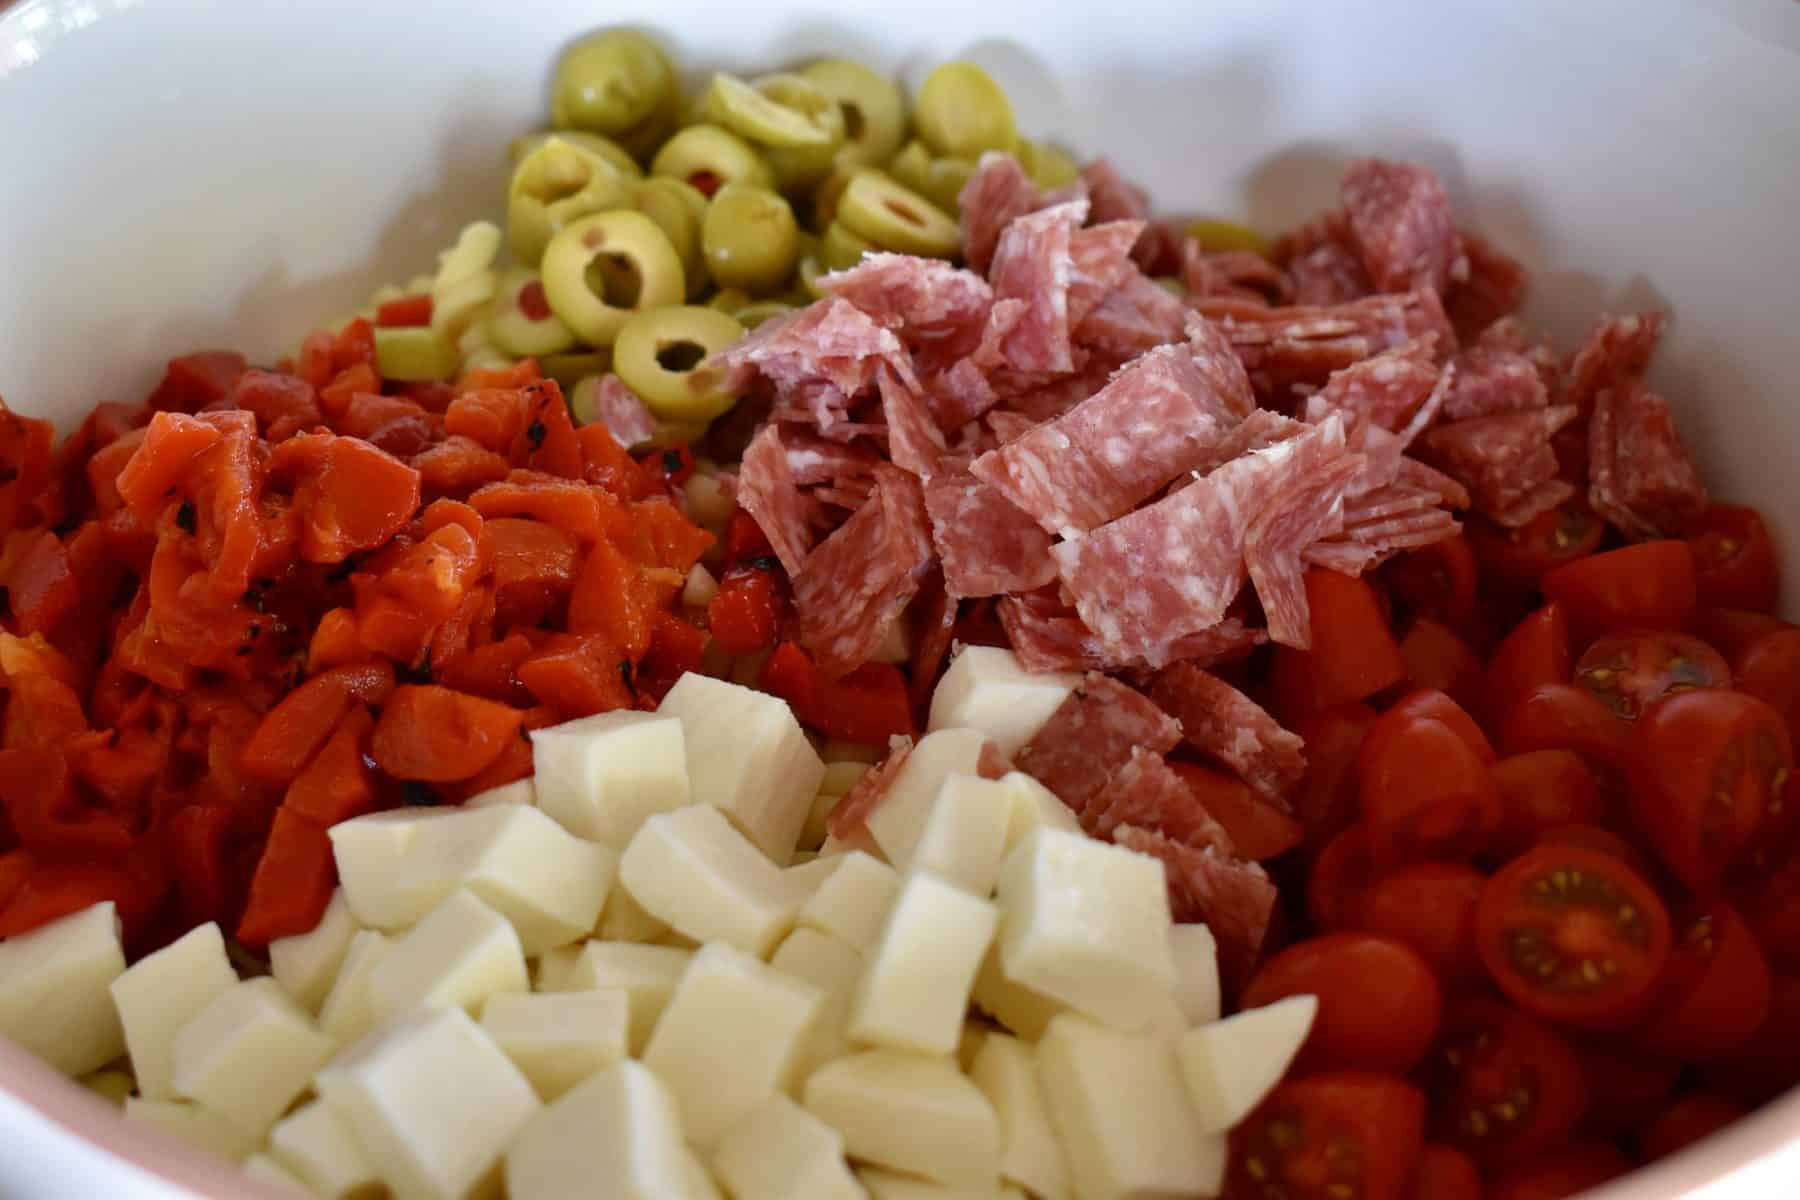 Close up view of the pasta salad with cherry tomatoes, mozzarella, bell peppers, green olives, and salami.